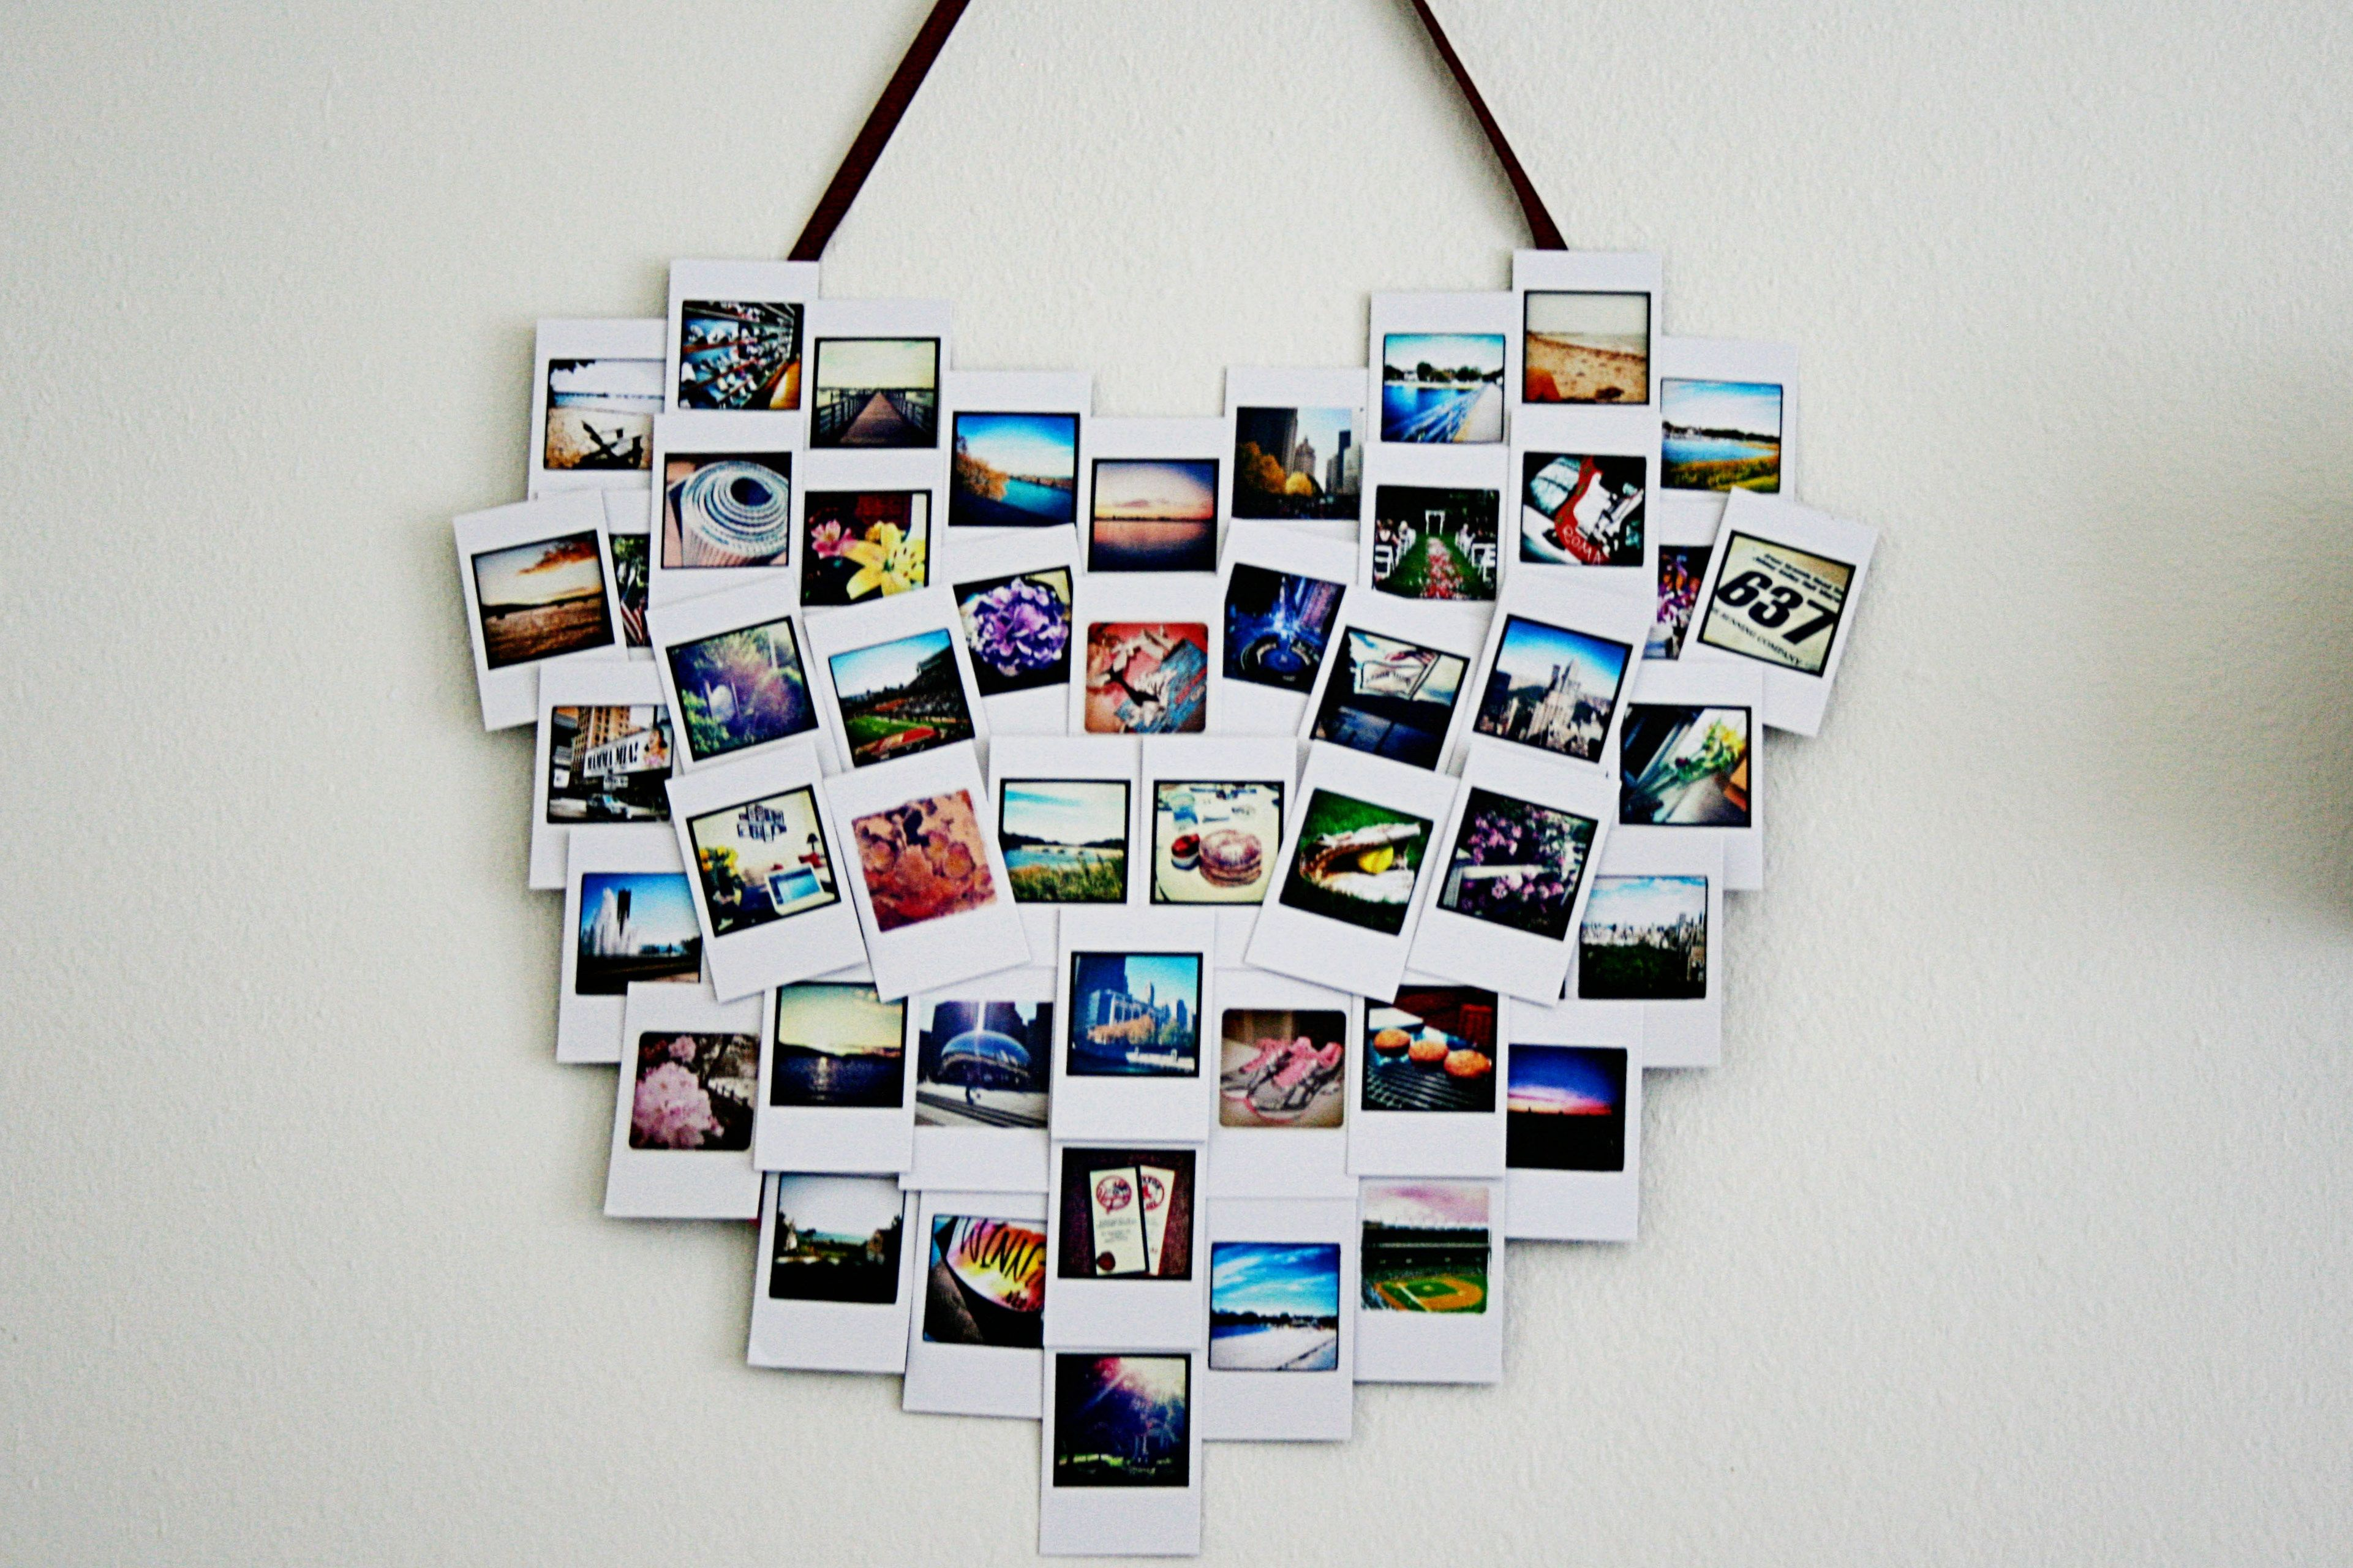 Www Loegz Com Wp Content Uploads 2016 11 Creative Things To Make For Your Room Jpg Wedding Photo Display Photo Displays Baby Scrapbook Pages